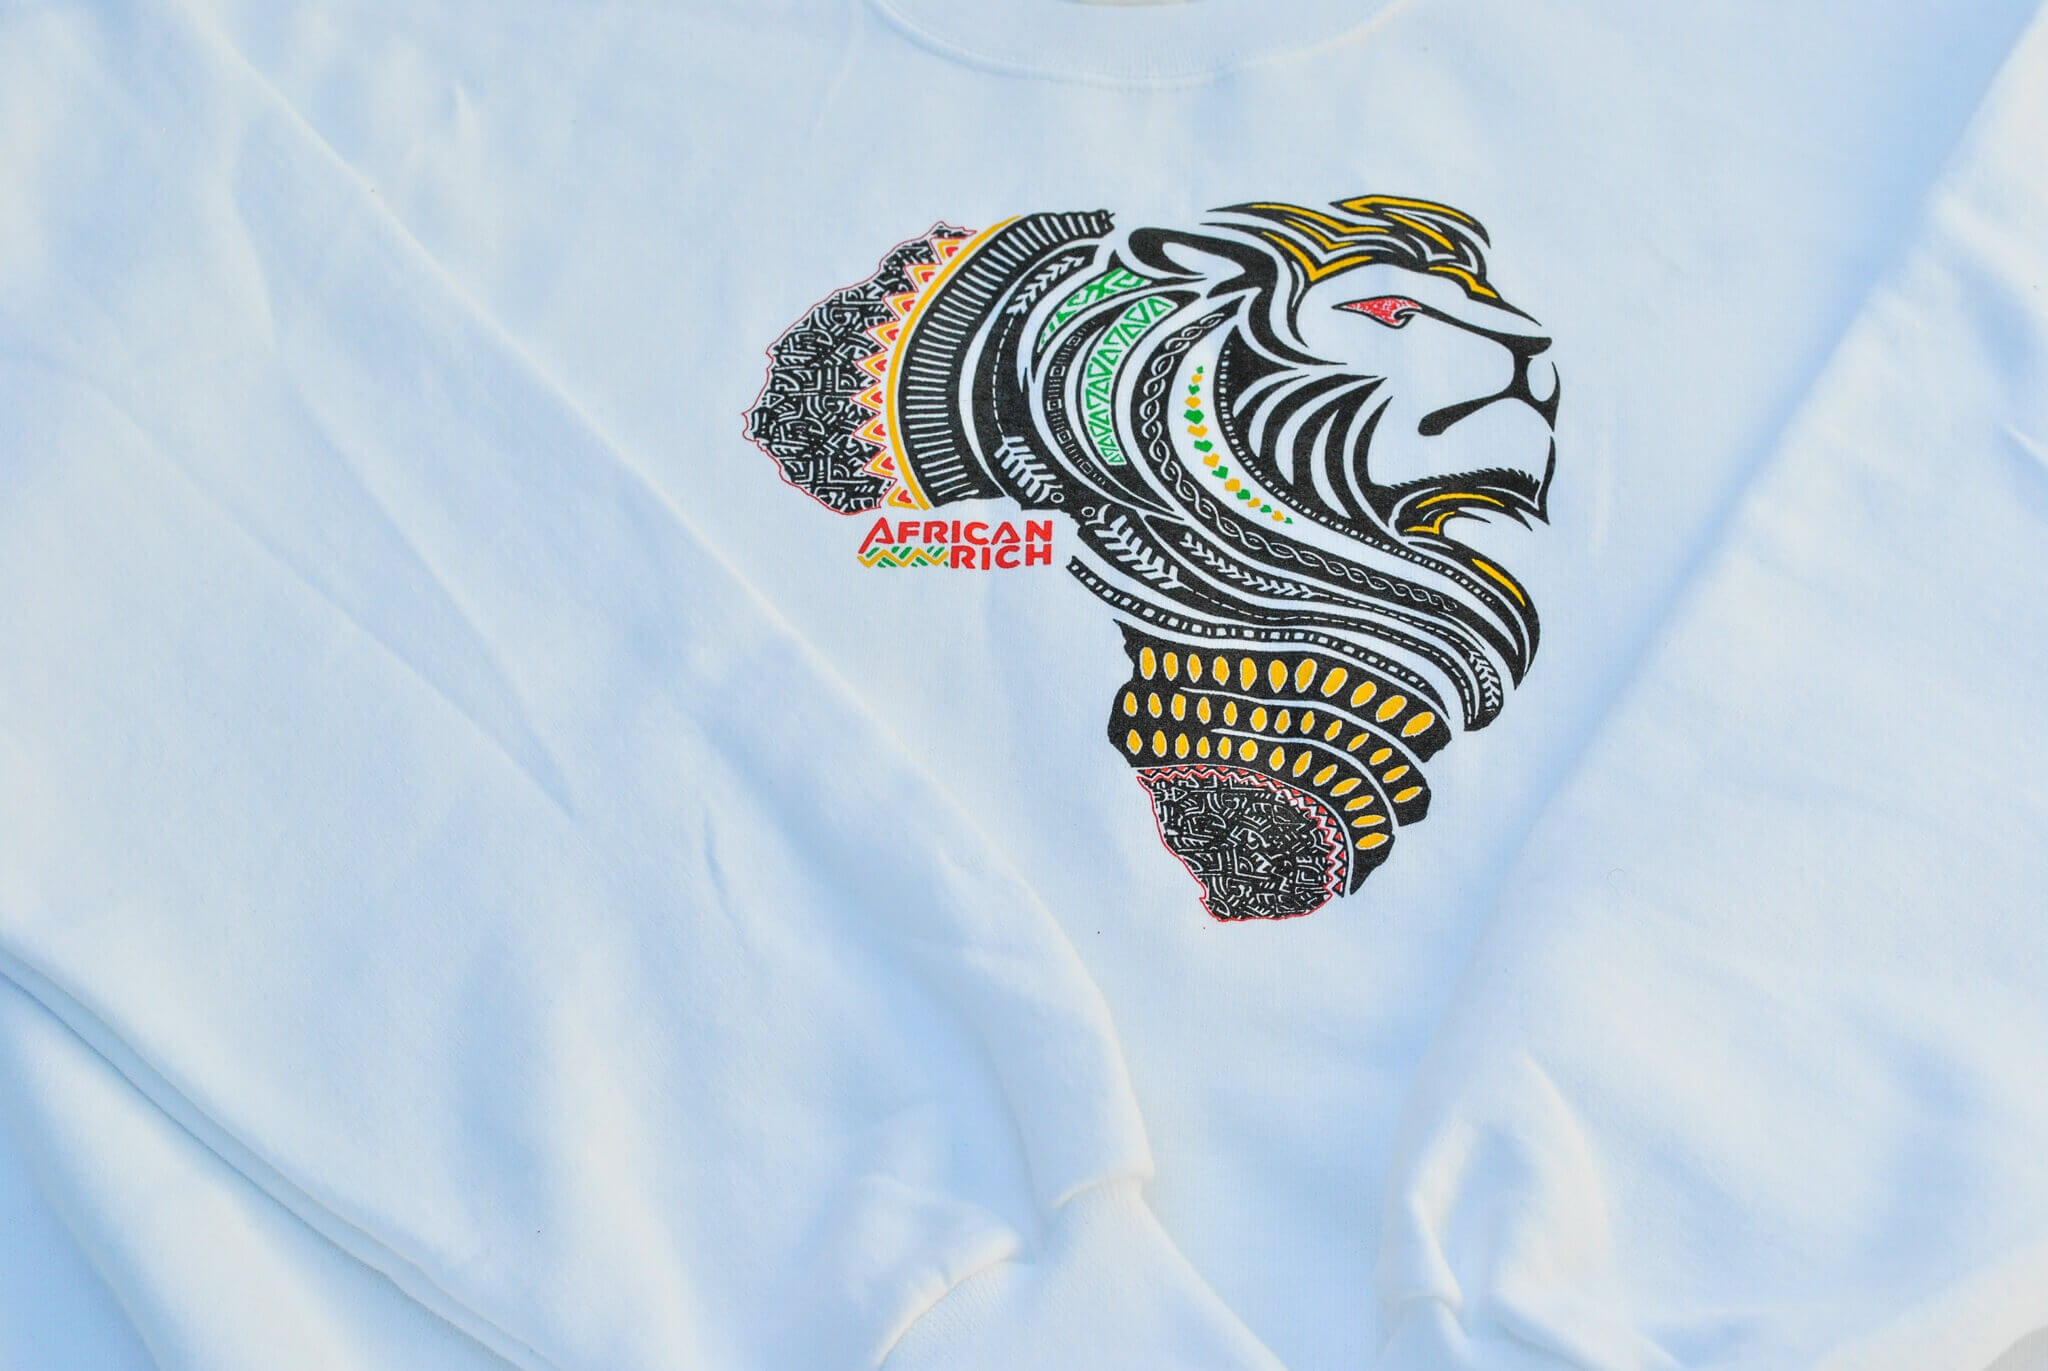 AfricanRich 4 Color Logo Crewneck Sweater